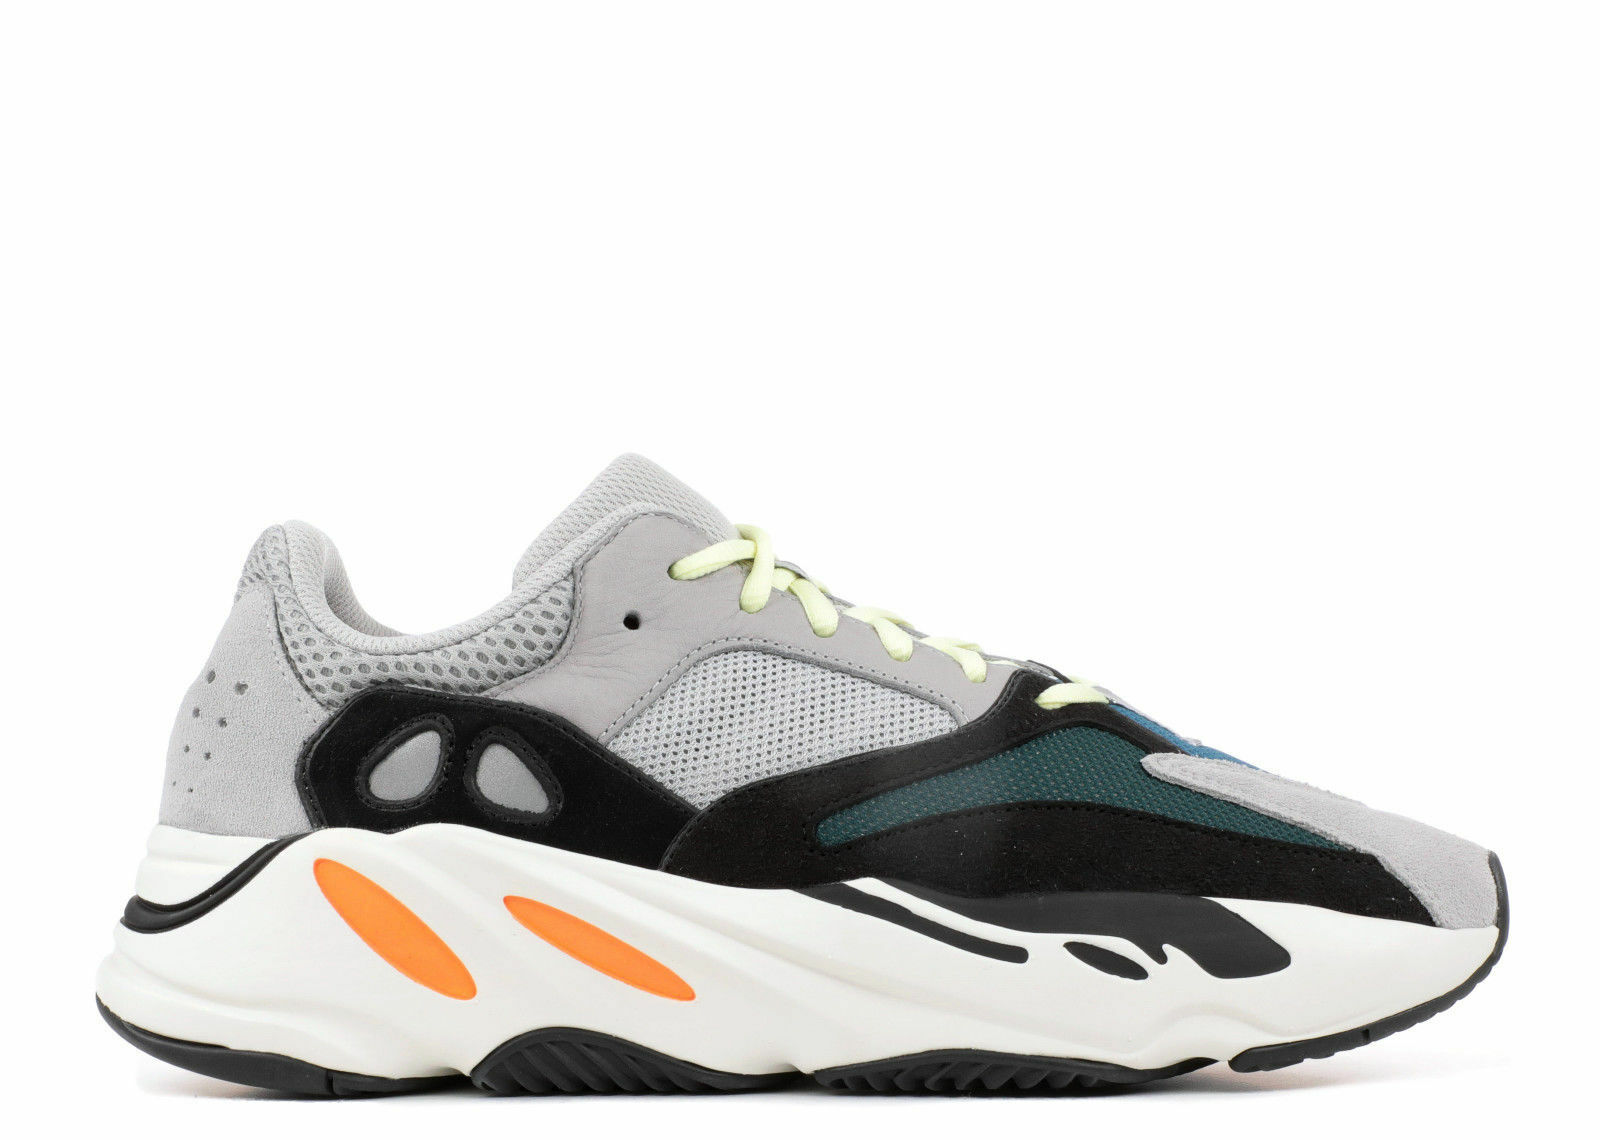 d03f9c70ae4 adidas Yeezy Boost 700 Wave Runner B75571 for sale online